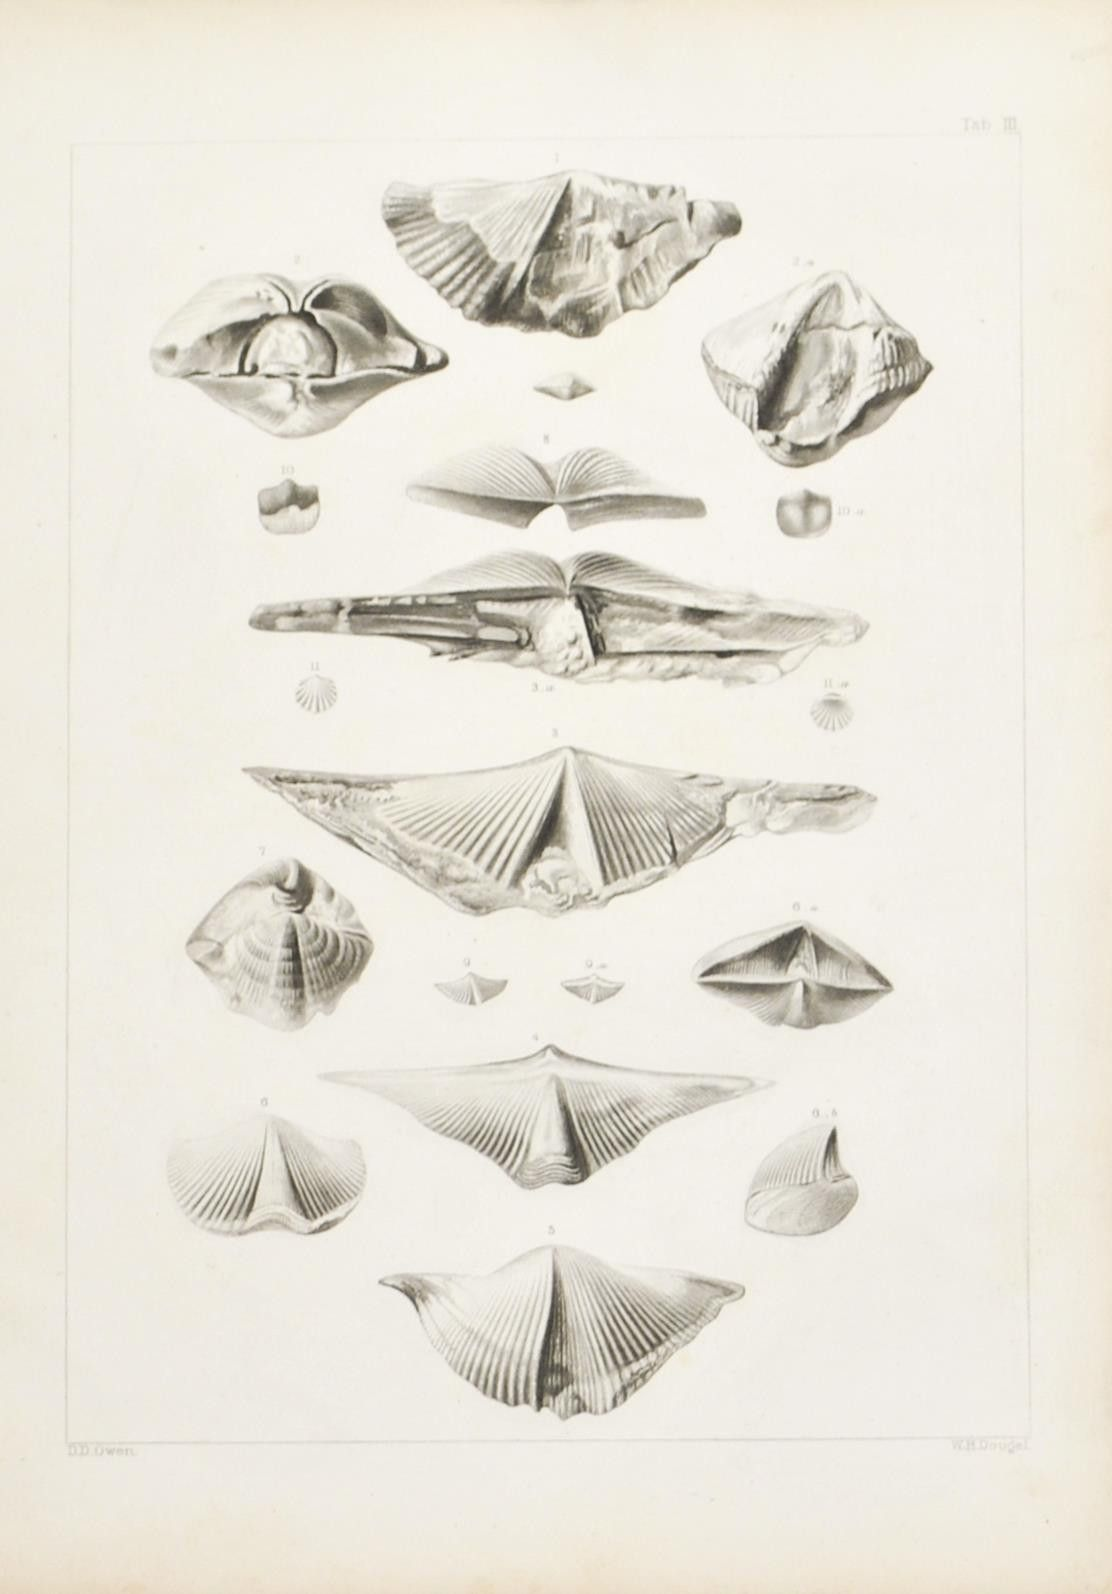 Spirifers Orthis and Strophodonta from the Shell-Beds of the Iowa and Cedar Rivers Belonging to the Devonian Period Issued 1852 Philadelphia Lippincott Grambo & Co Illustrations to the Geological Repo